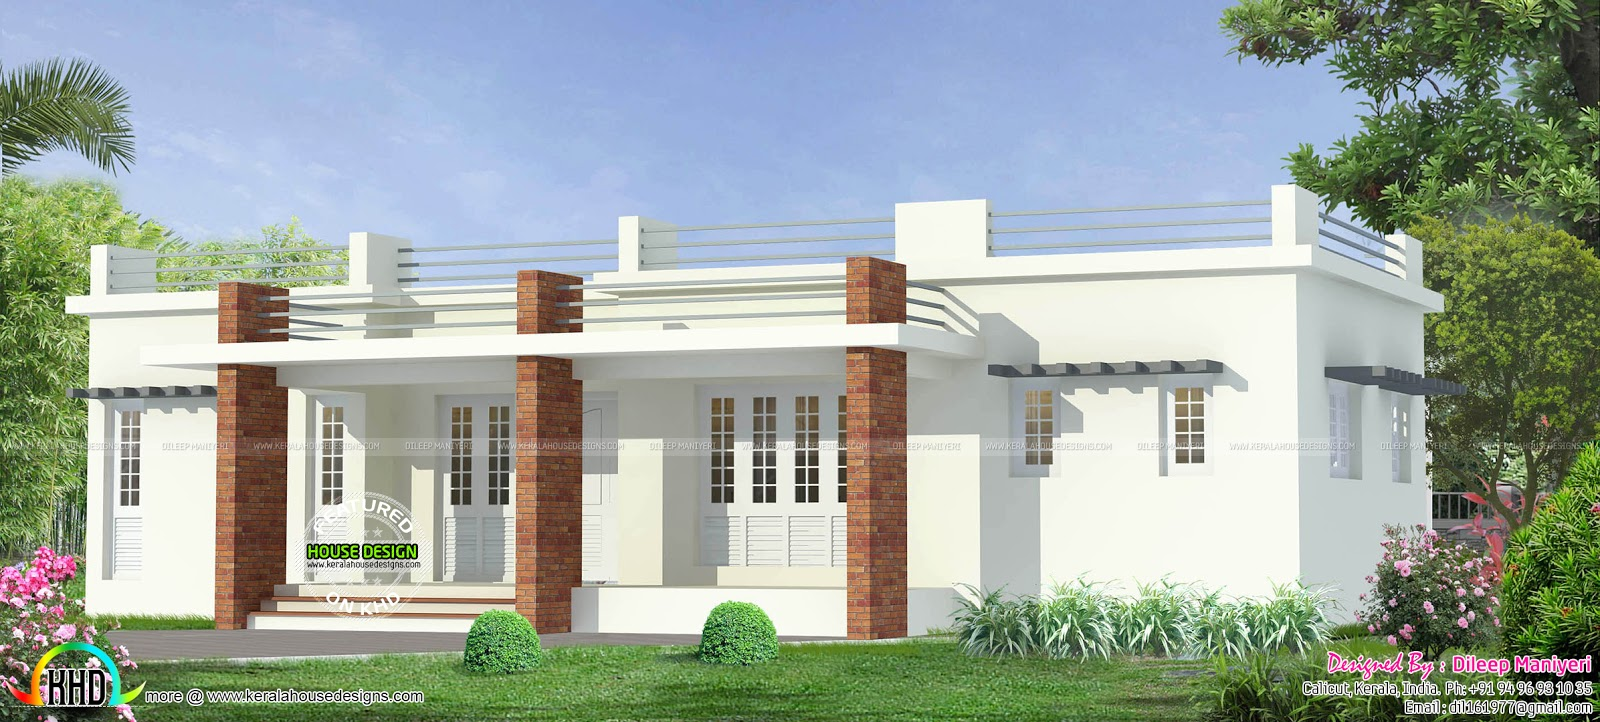 Single floor house elevation models paint design modern for Single floor house elevation designs